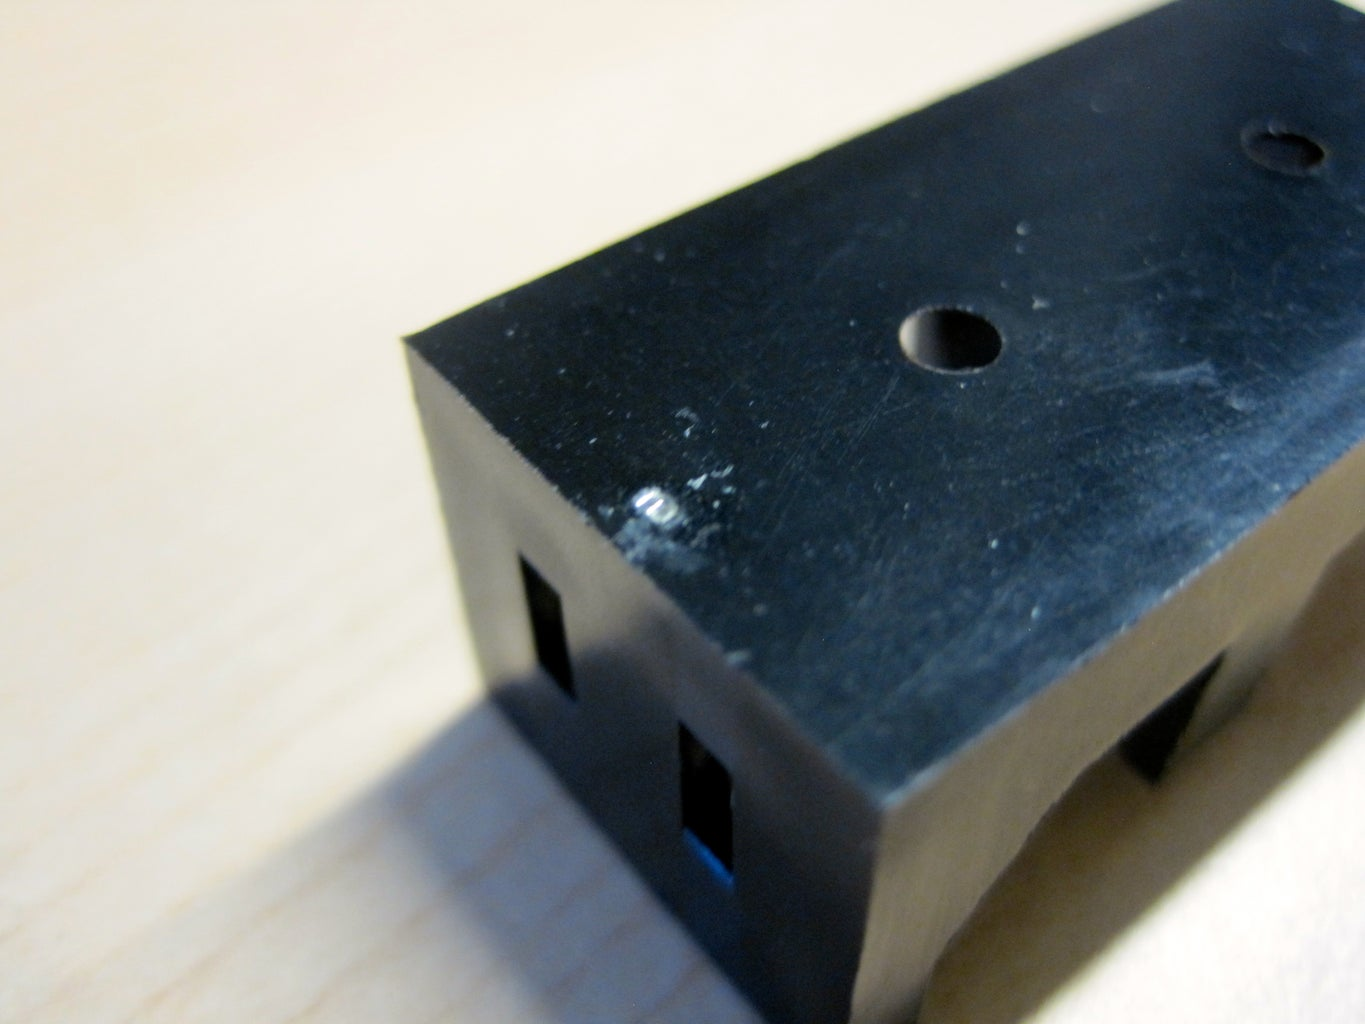 Making a Compact 6V Supply From Two CR123 Battery Clips